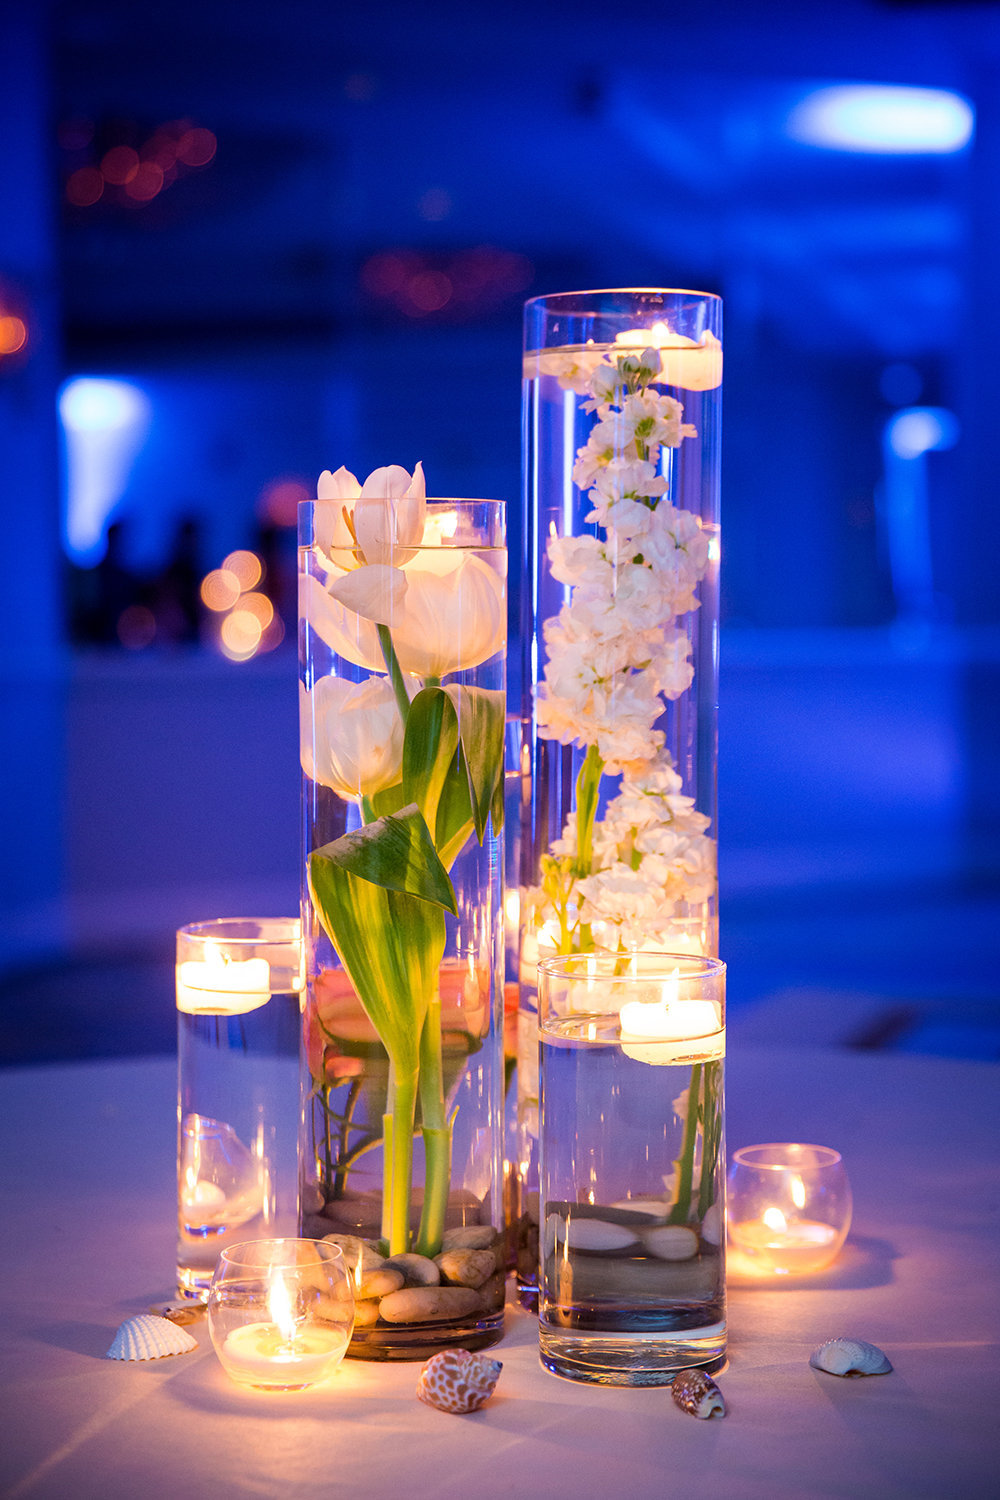 wedding photos candles with flowers floating in water